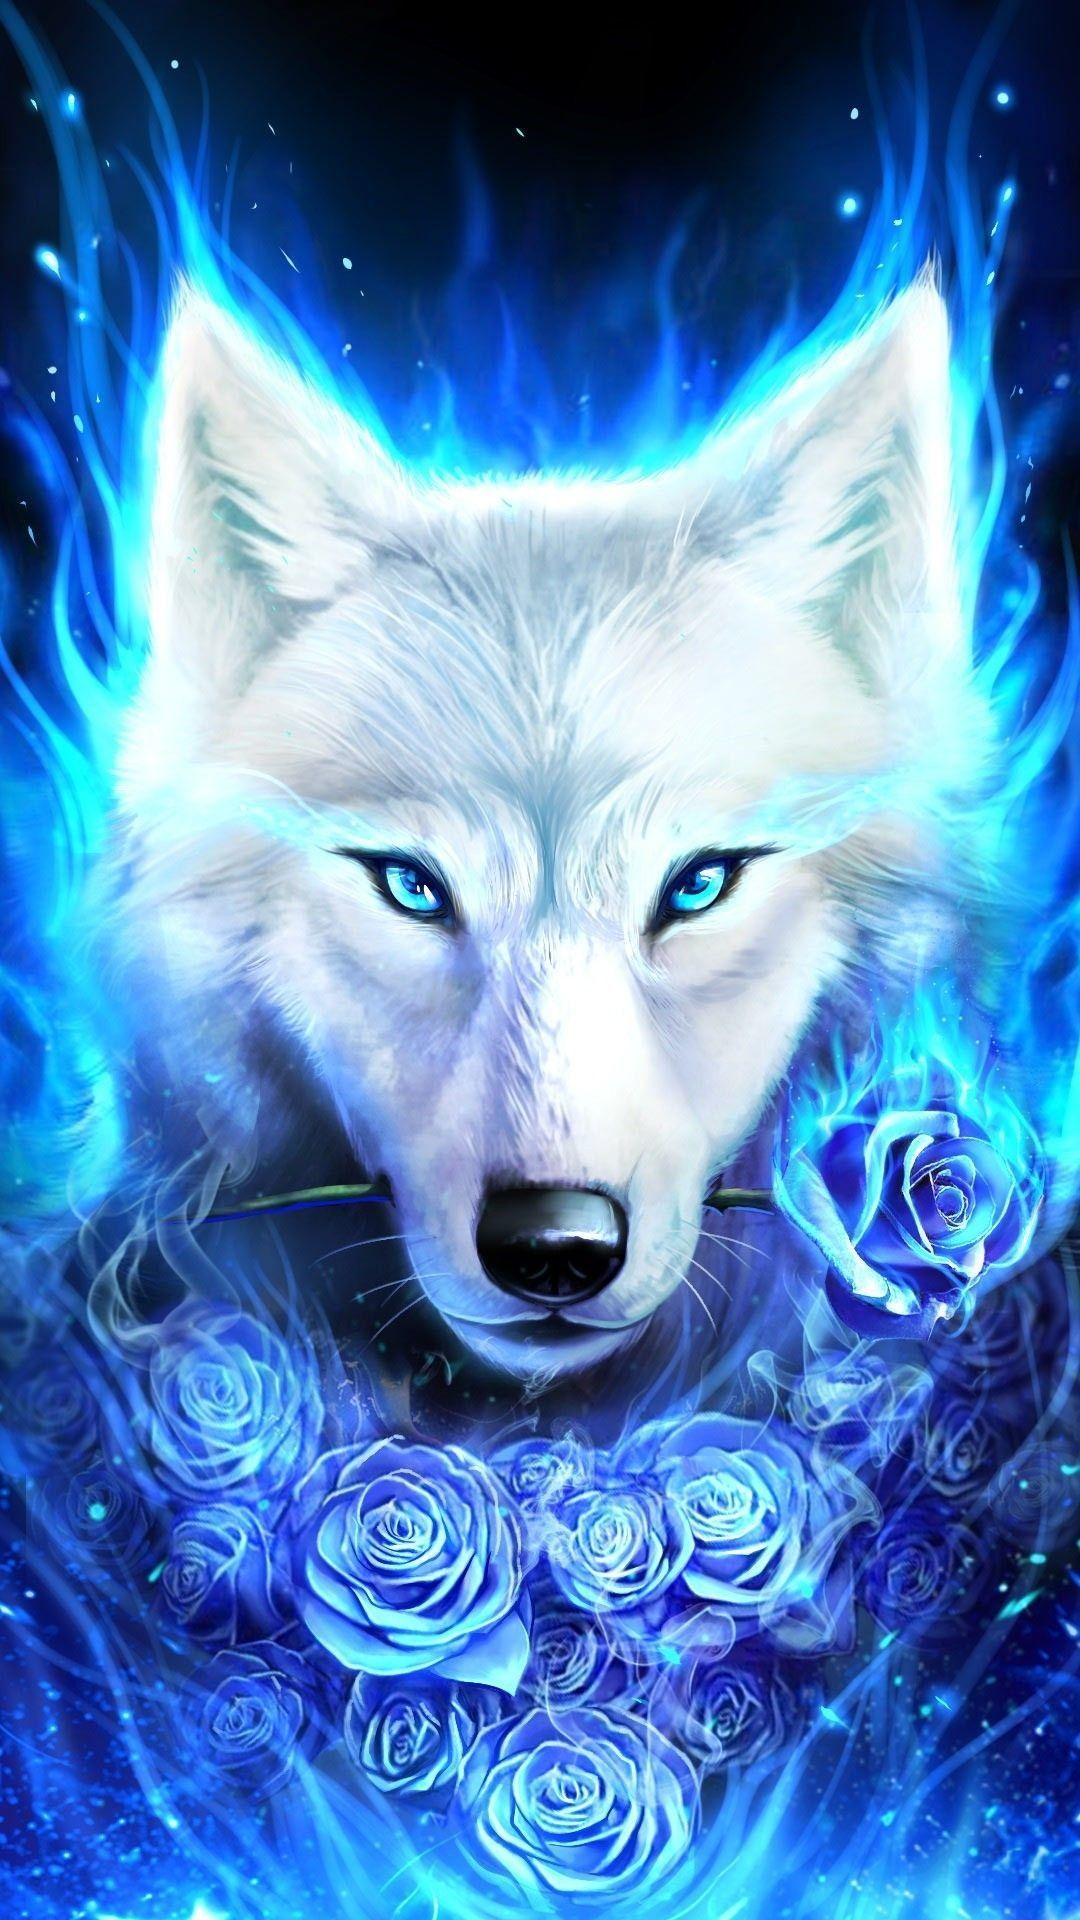 Epic Wolf Wallpapers Background For Iphone Wallpaper On Hupages Com If You Like It Dont Forget Save It Or Re Wolf Spirit Animal Ice Wolf Wallpaper Wolf Spirit